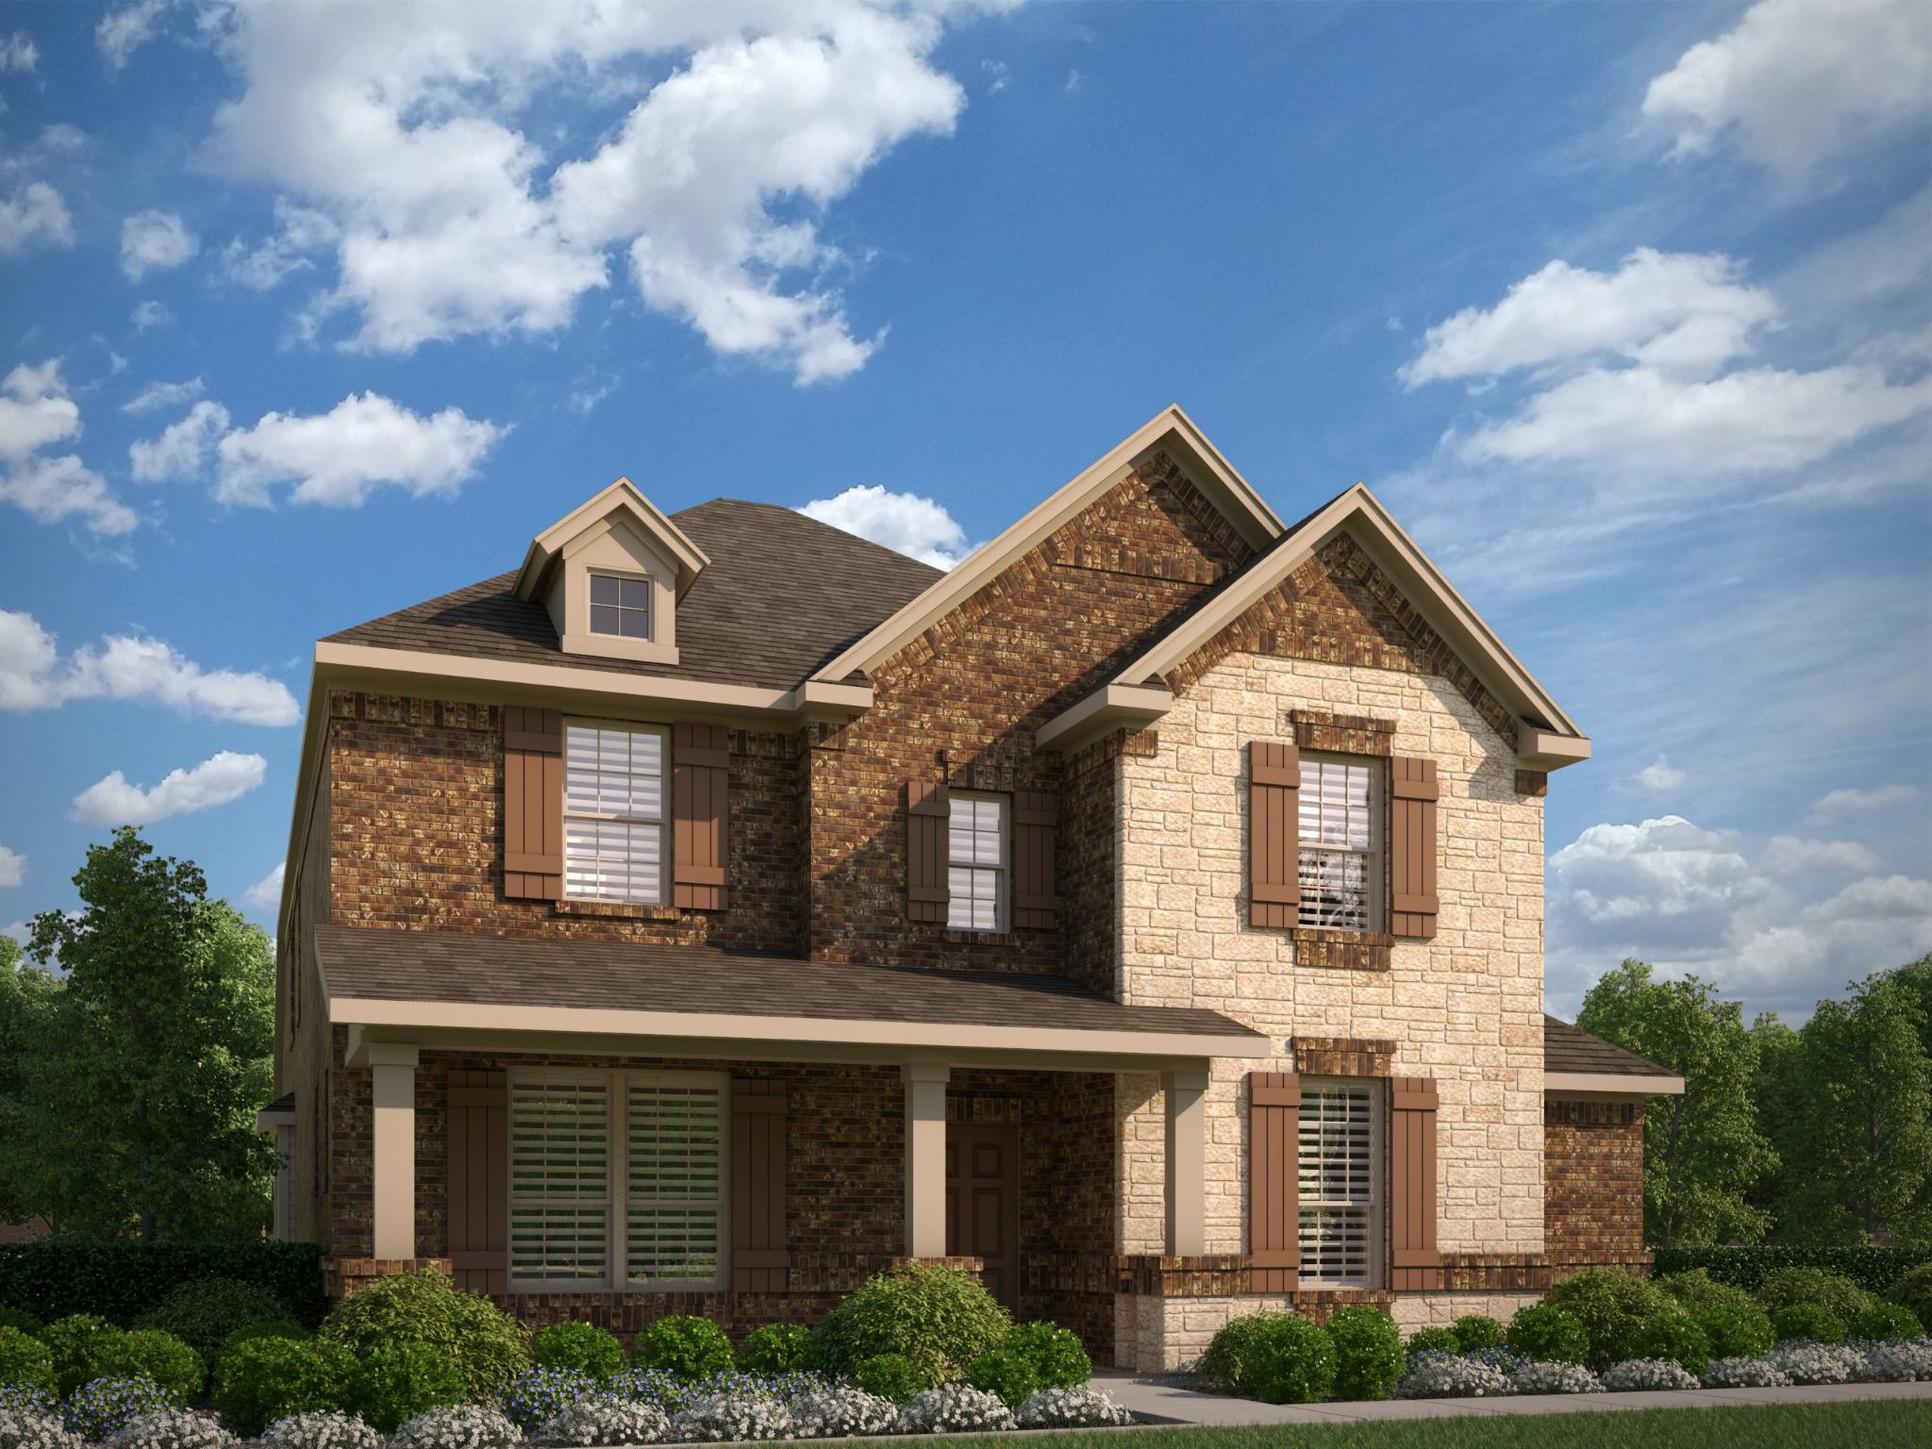 Exterior:3106 B with Stone